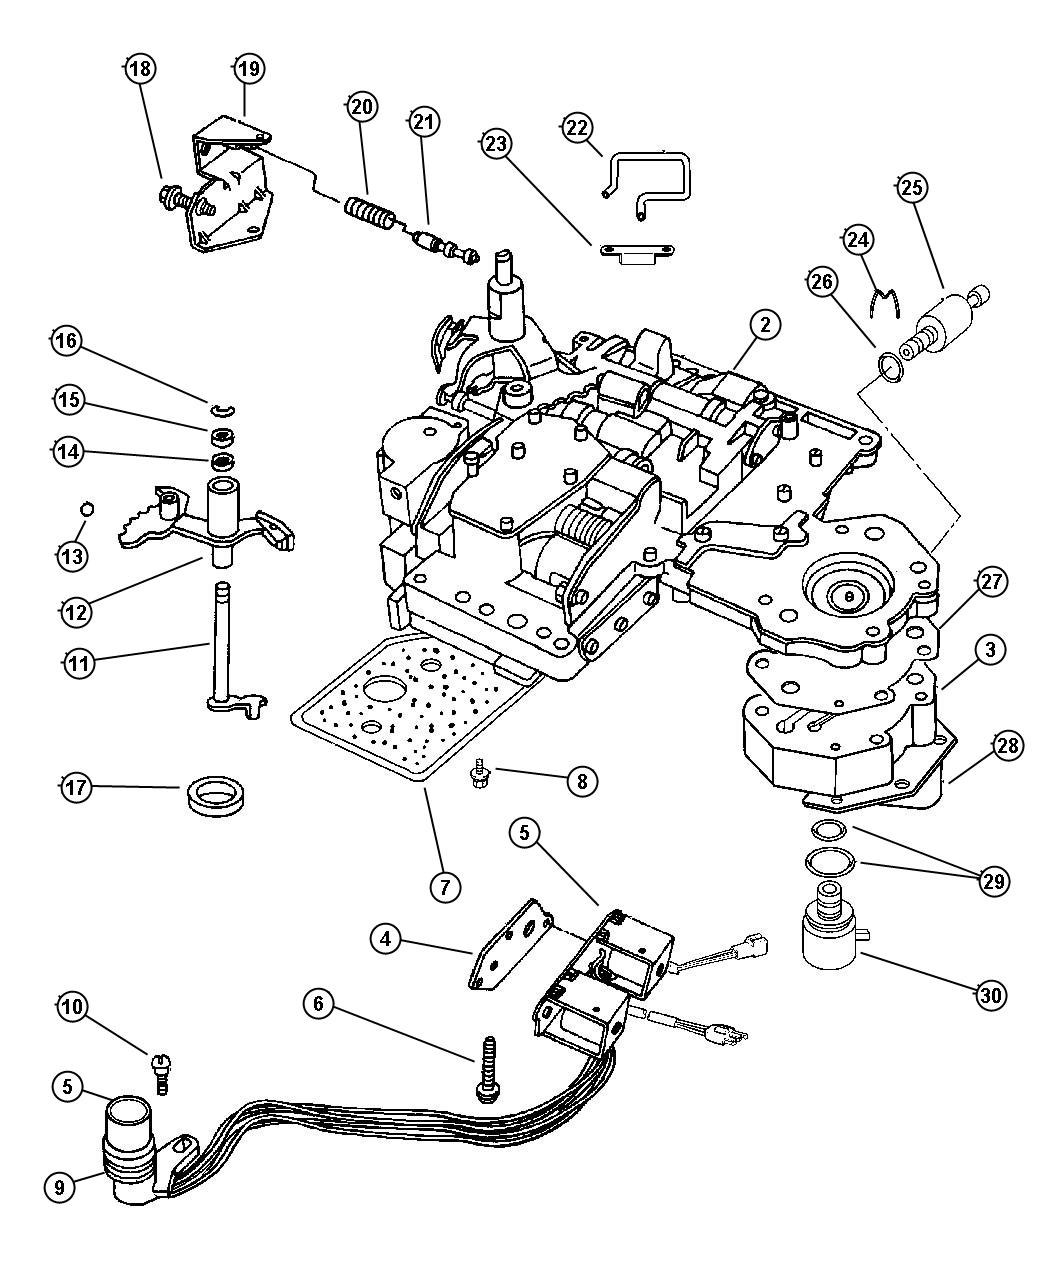 hight resolution of dodge ram transmission diagram pictures to pin